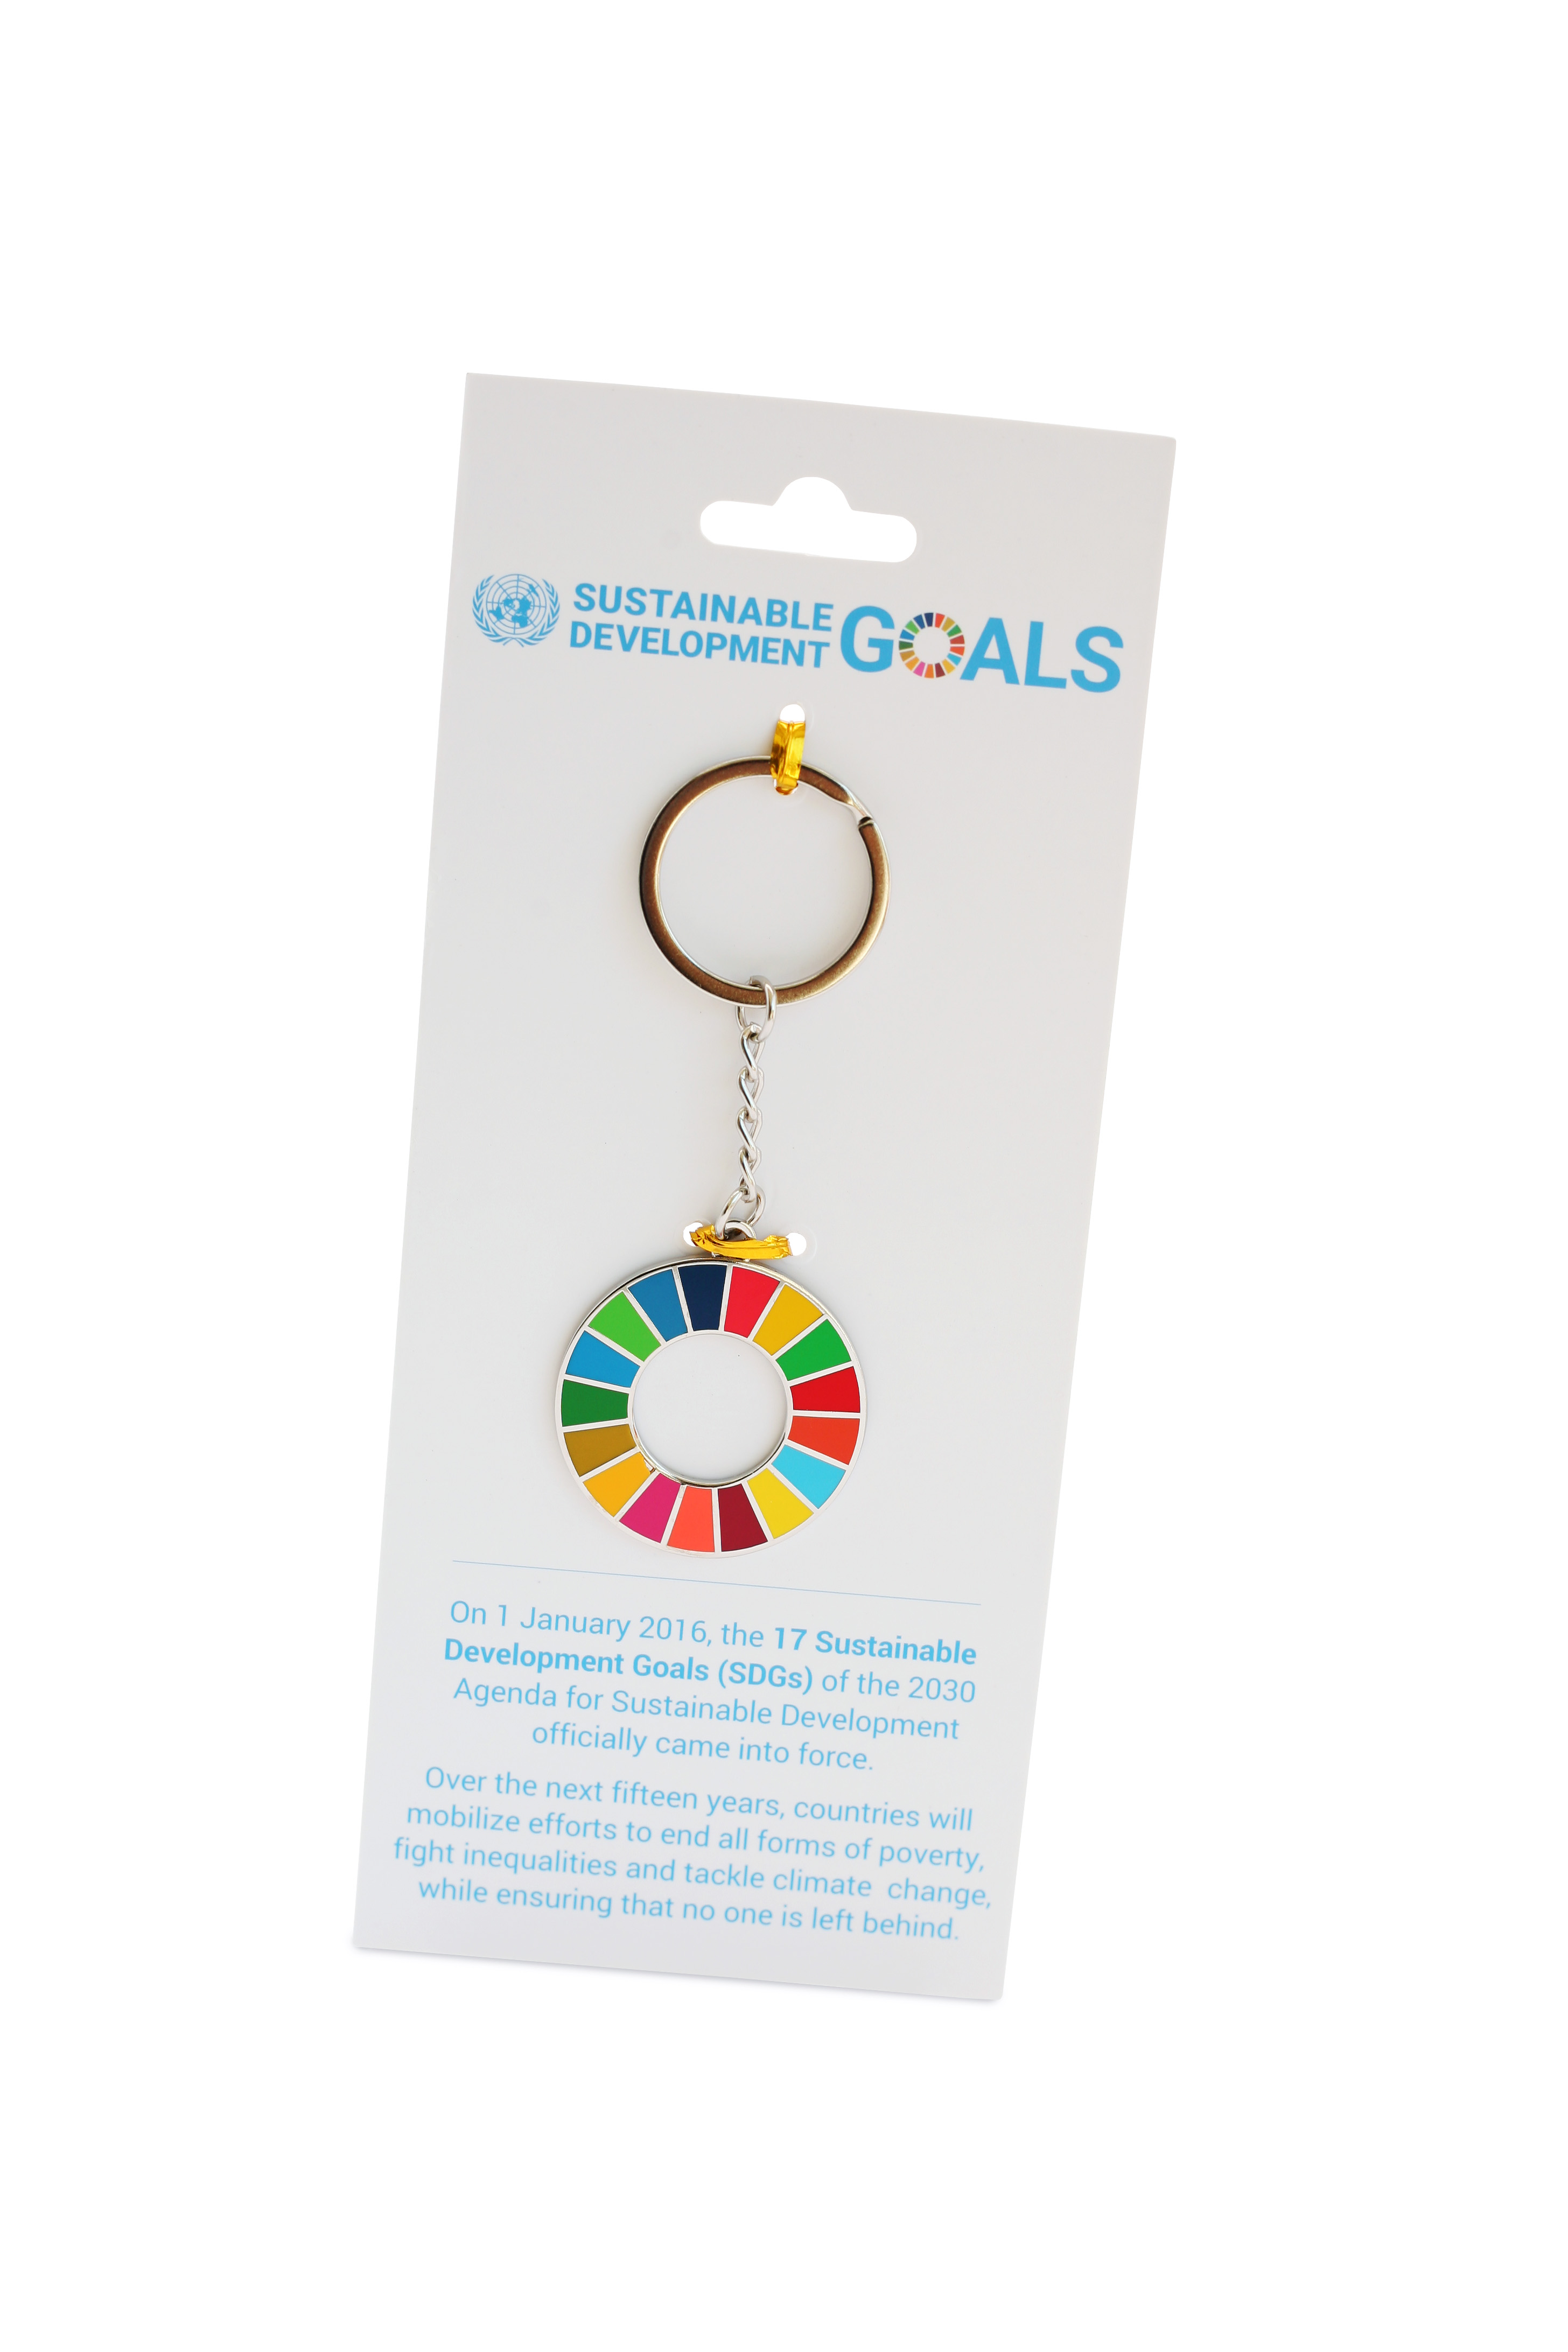 A picture of a keychain in the shape of the Sustainable Development Goals wheel on a cardboard backer.